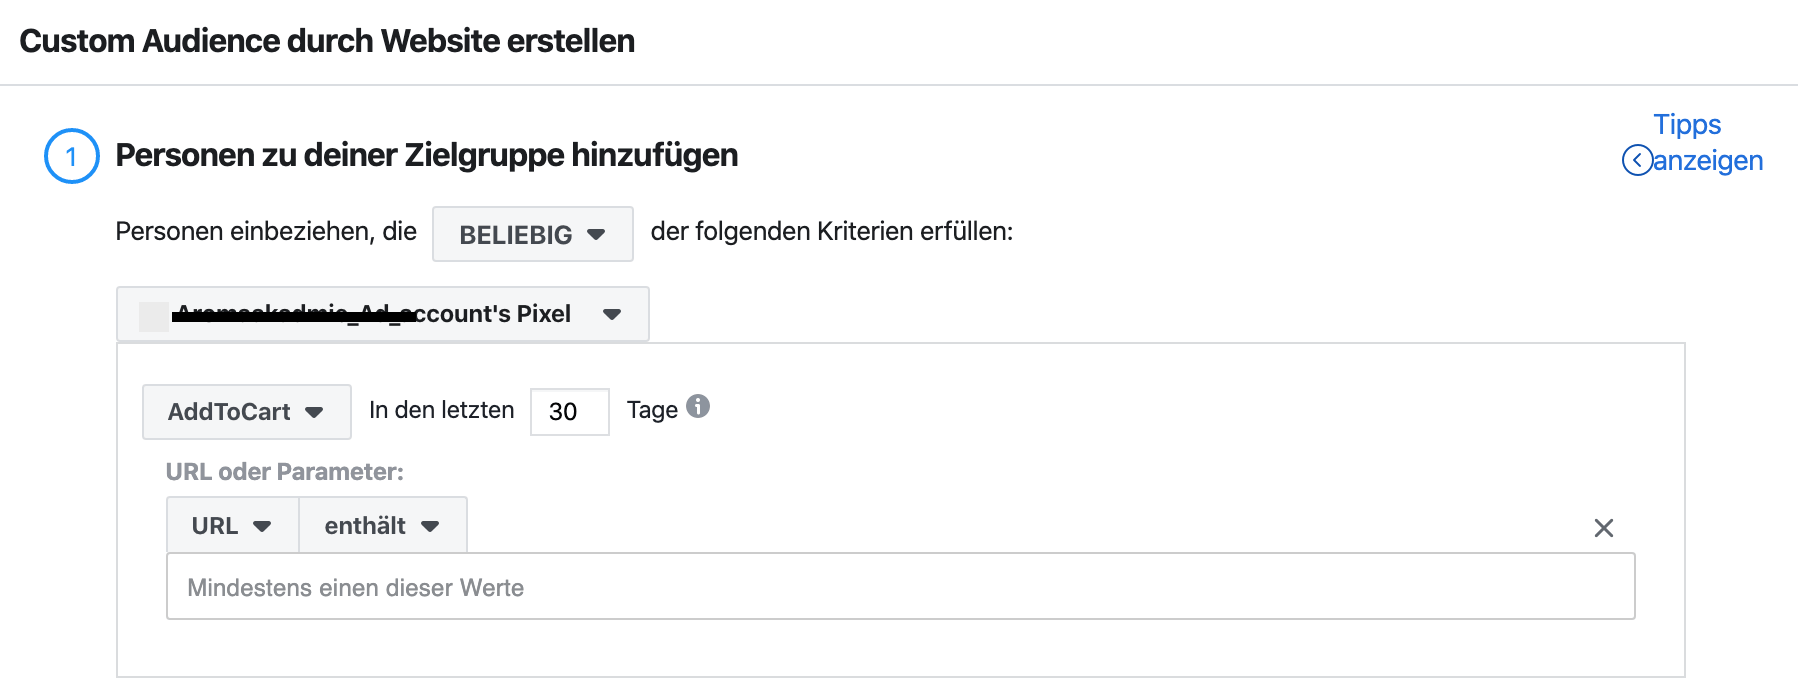 Custom Audience im Facebook Ad Manager